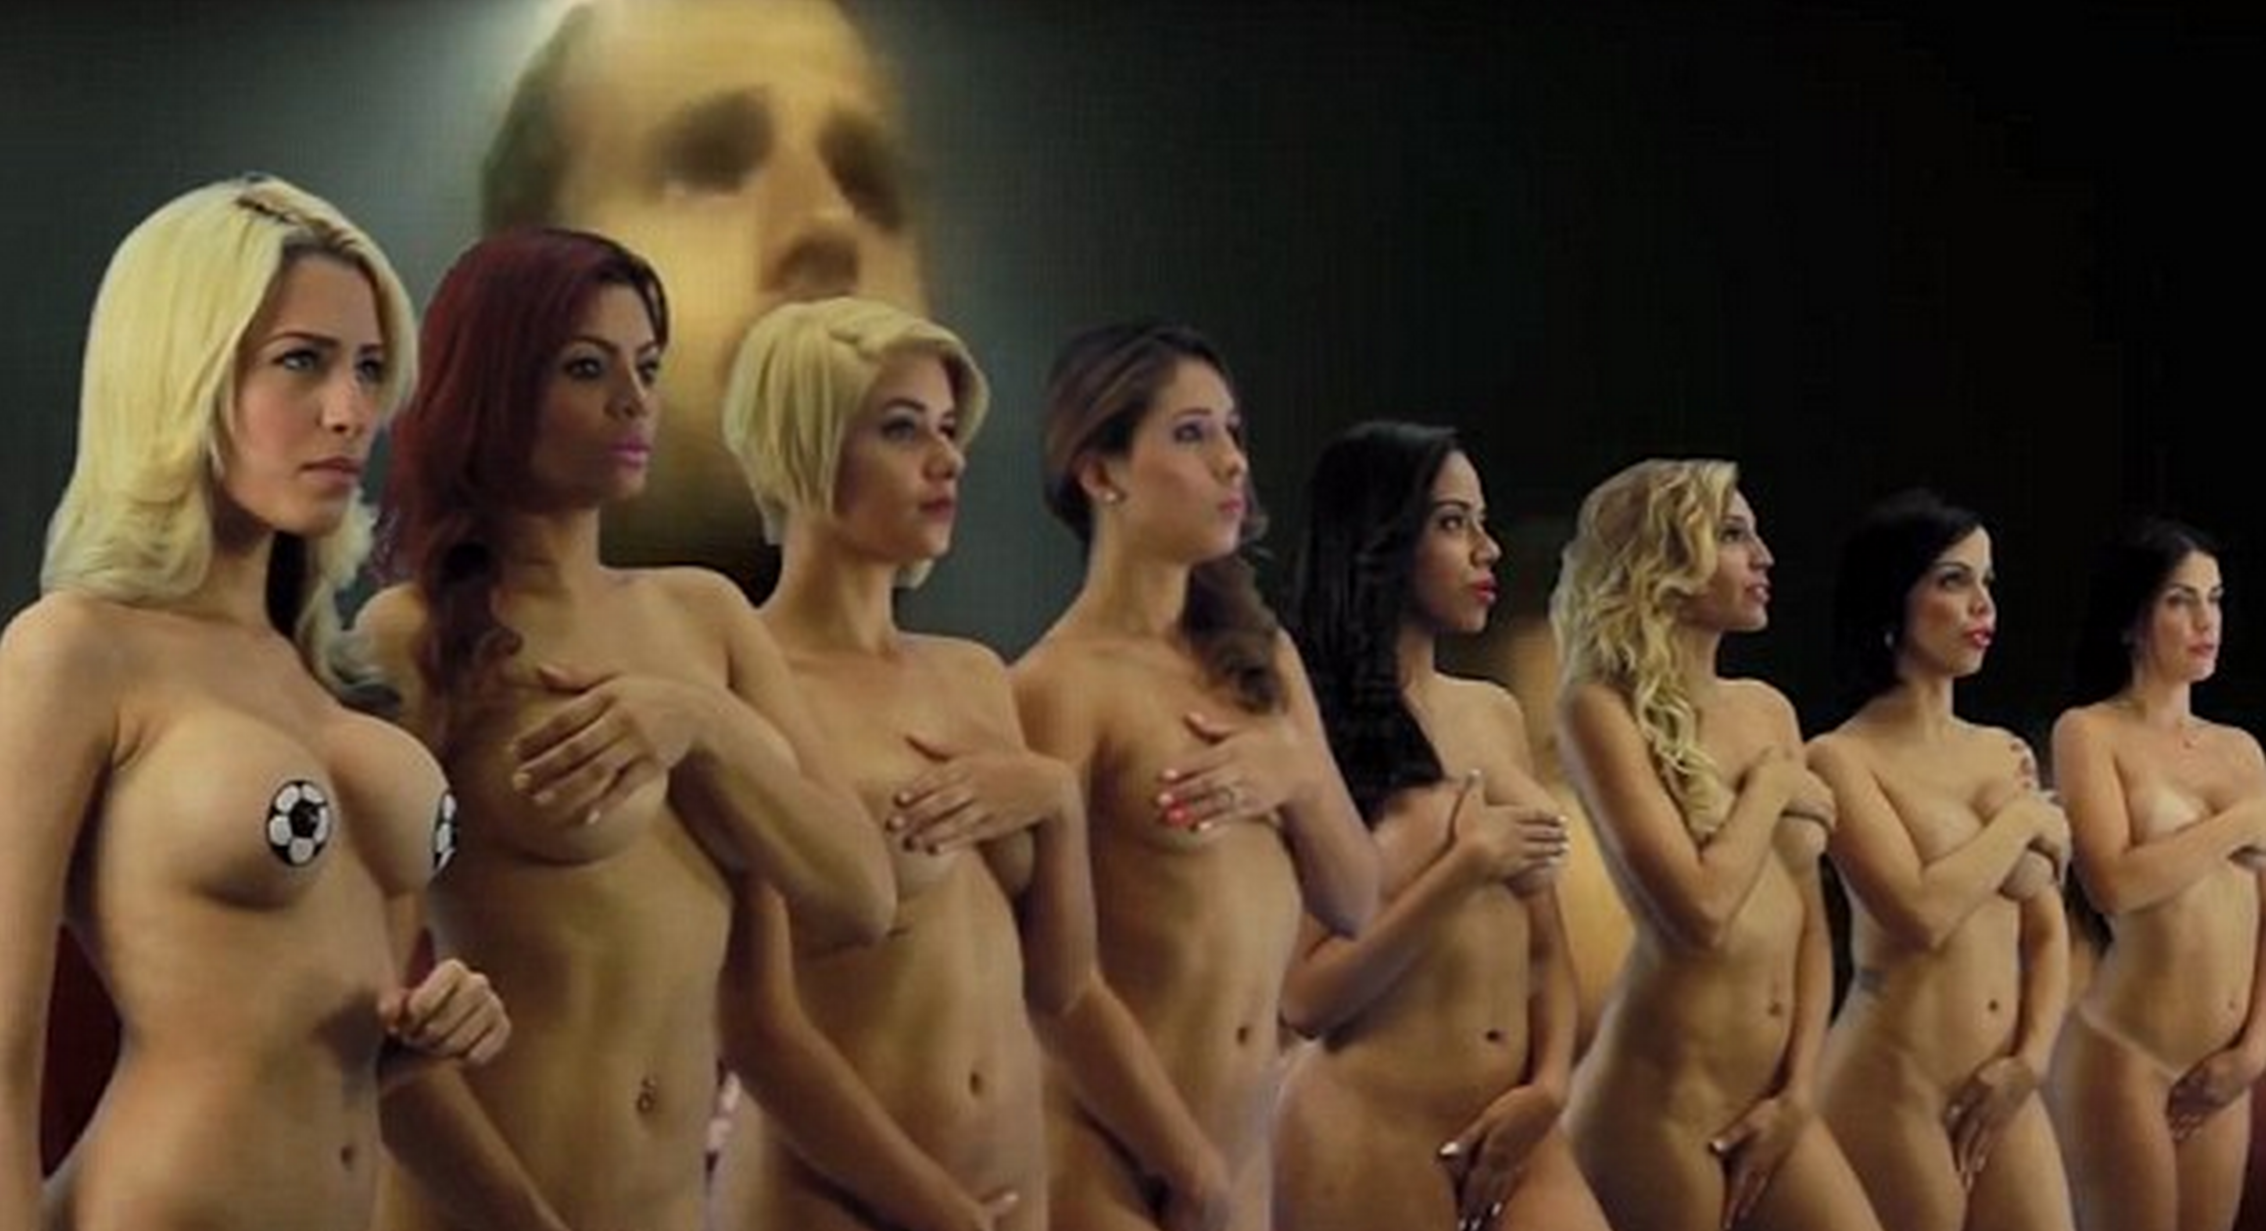 Venezuelan News Team Strip Naked To Support Team In Copa America Screen Shot 2015 06 10 at 13.15.01